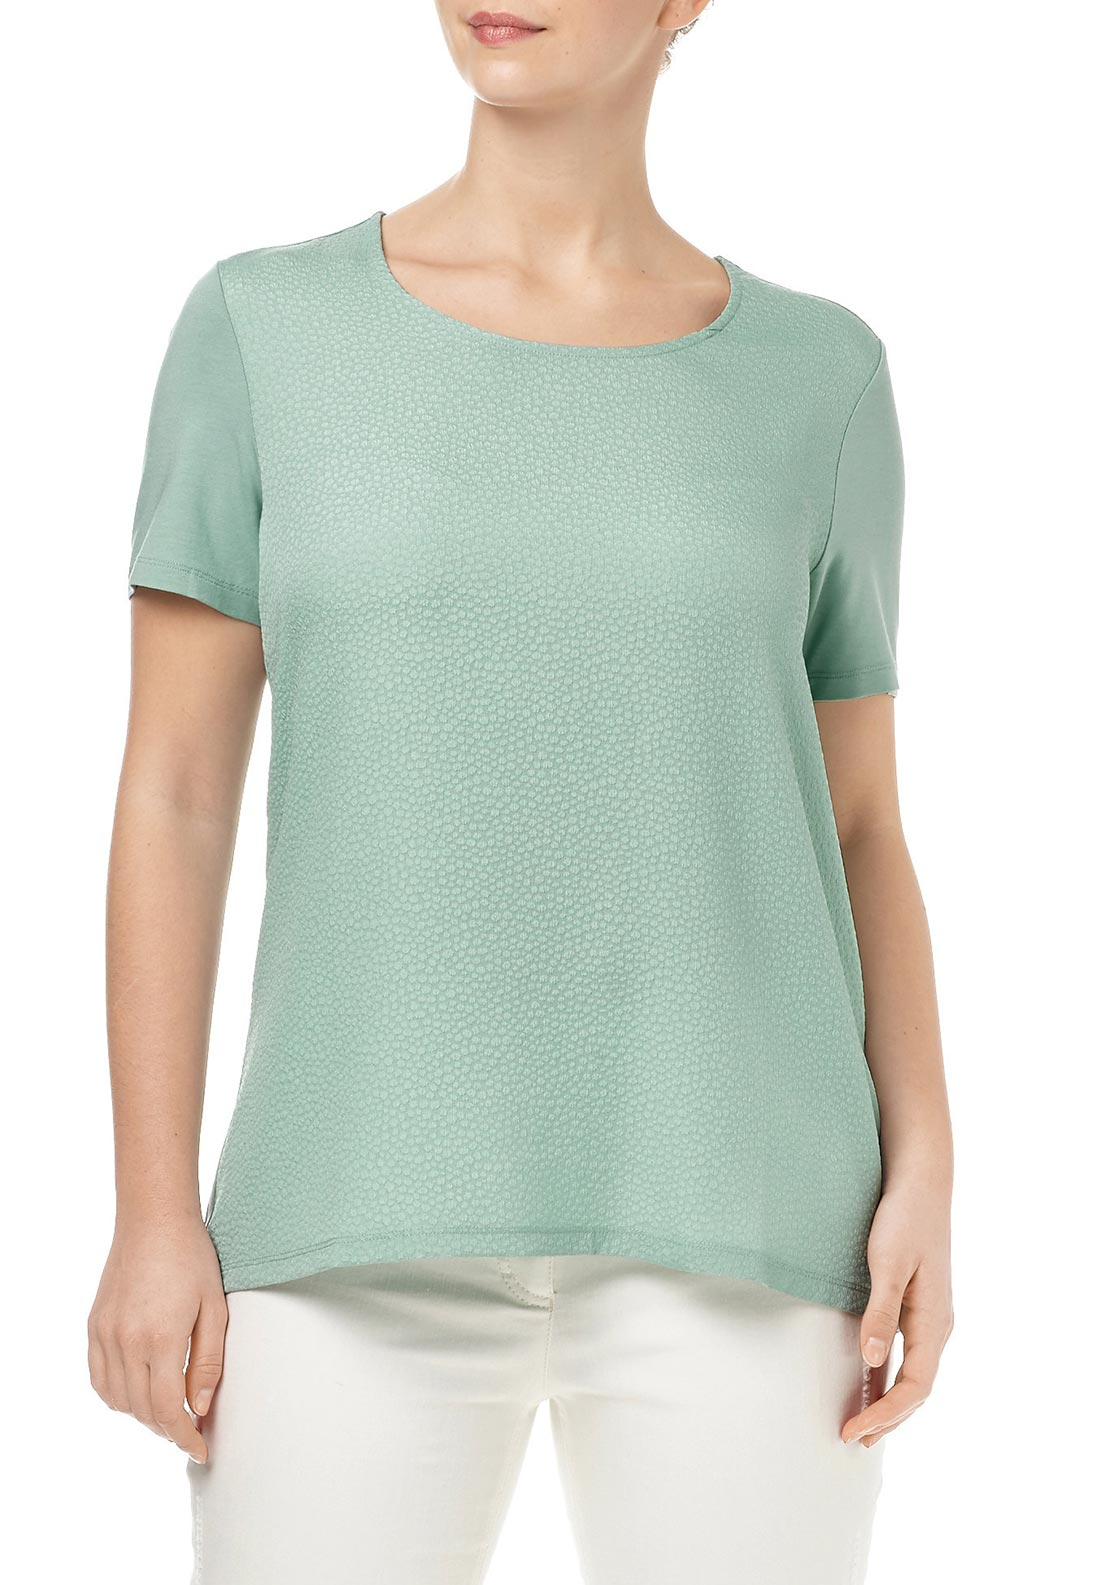 Samoon Embossed Print Relaxed Fit Short Sleeve Top, Mint Green